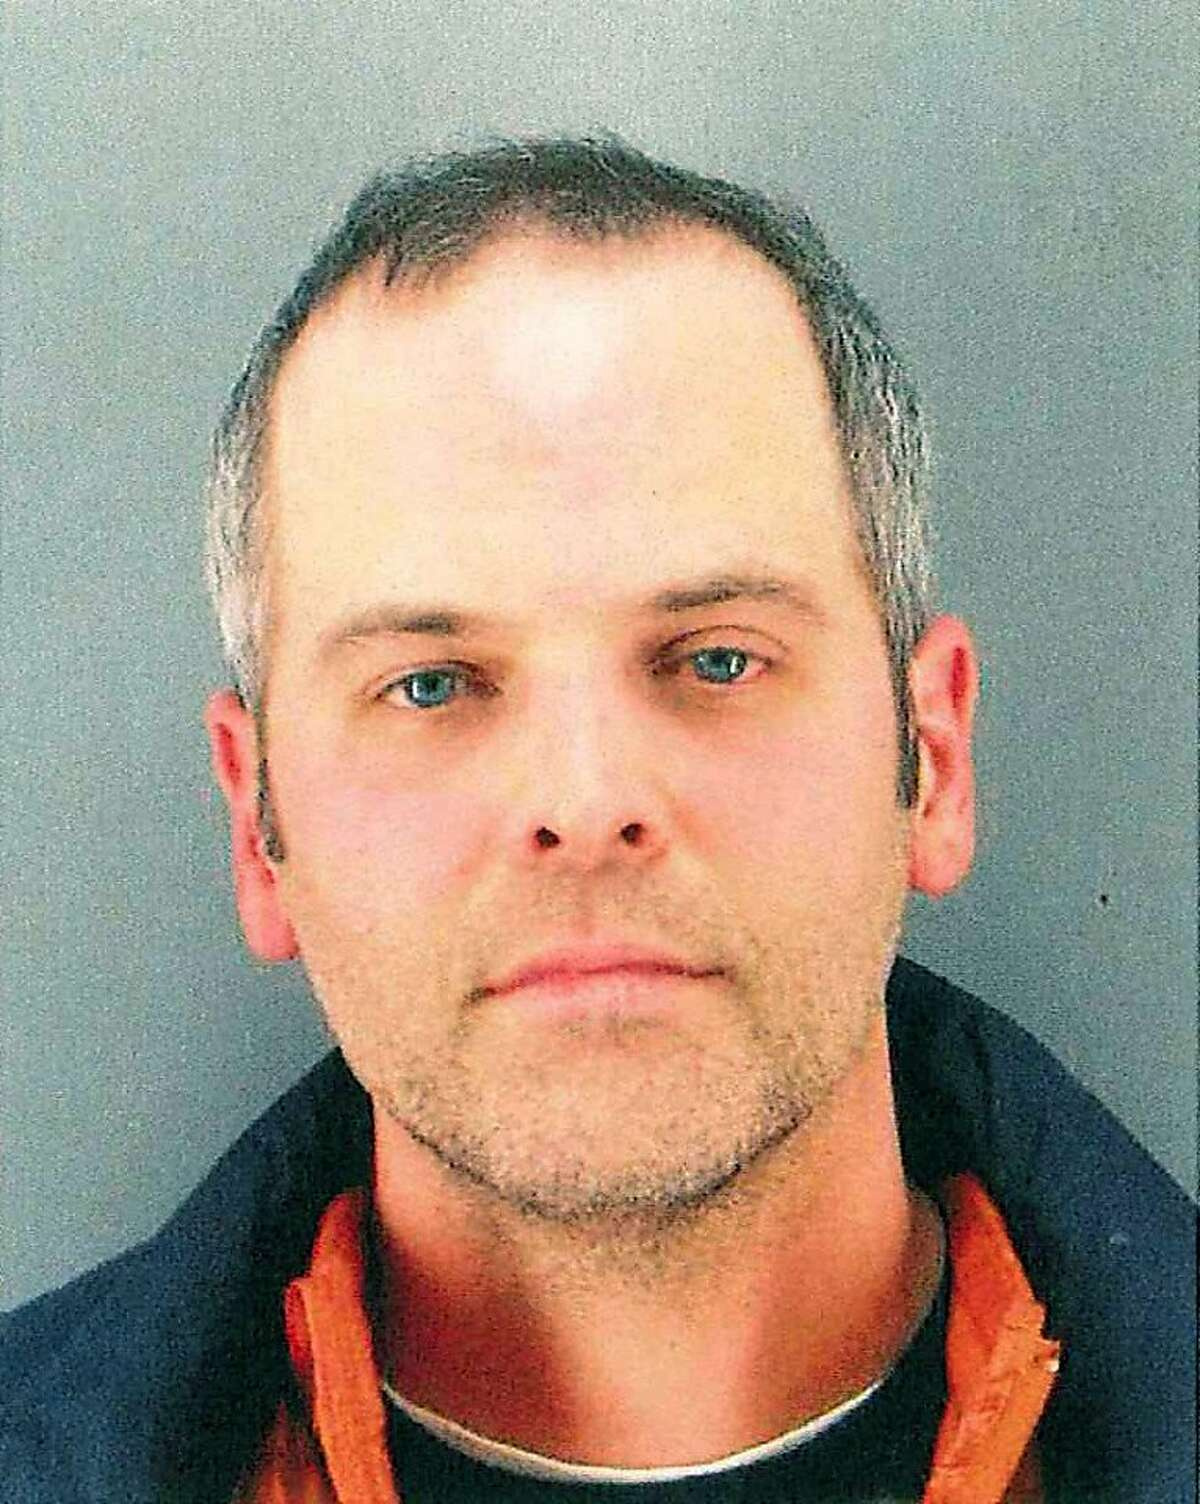 Police say 40-year-old Scott Mitchell of Sebastopol drove his SUV into a Muni tunnel, snarling the morning commute. Mitchell was arrested on suspicion of driving under the influence, failure to obey a stop sign and driving on train tracks on Thursday, Jan. 19, 2012.